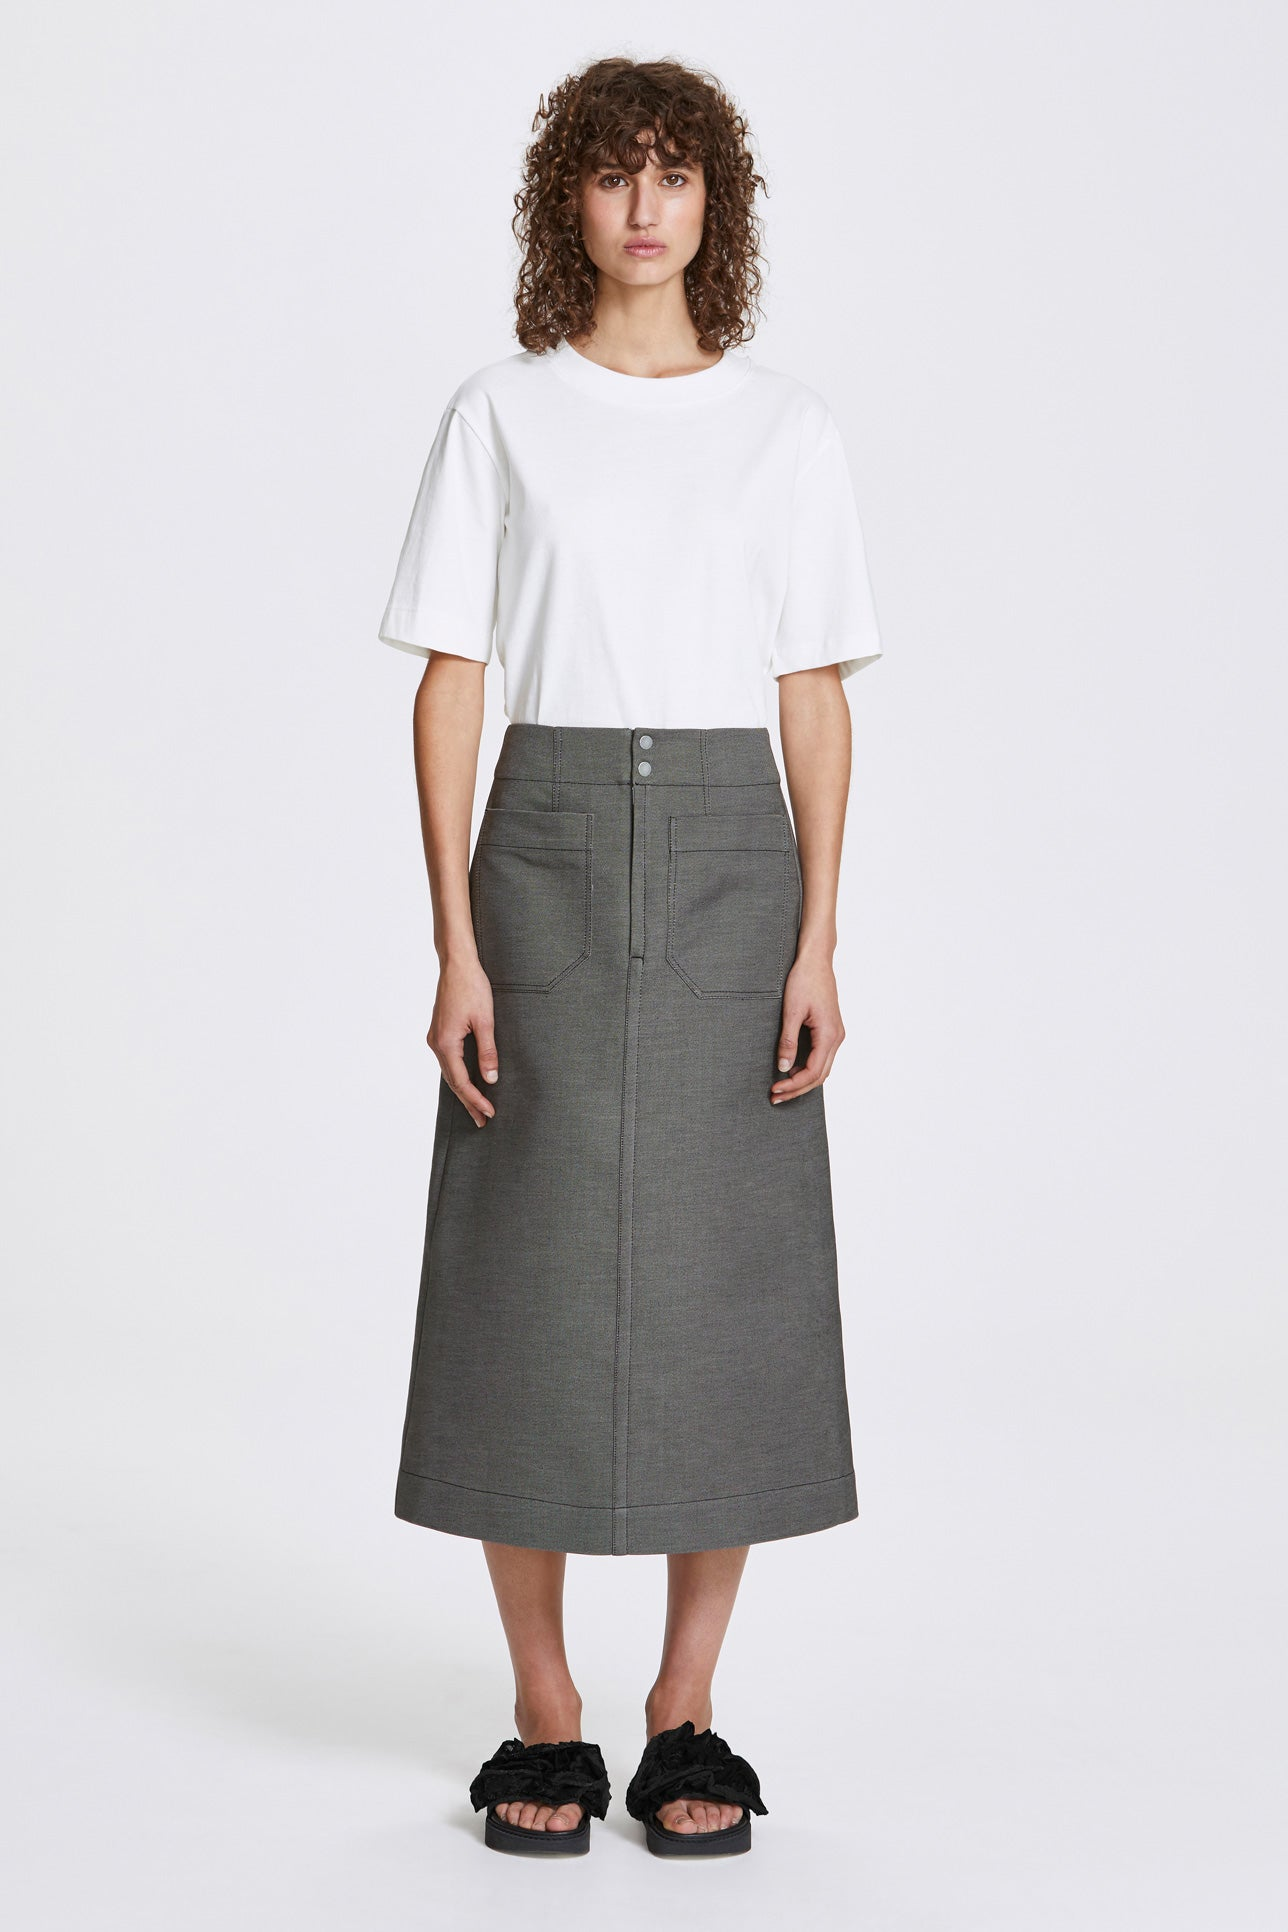 Inverse a-line long skirt - Double-faced cotton twill - Grey - Resortwear skirt - Her Line